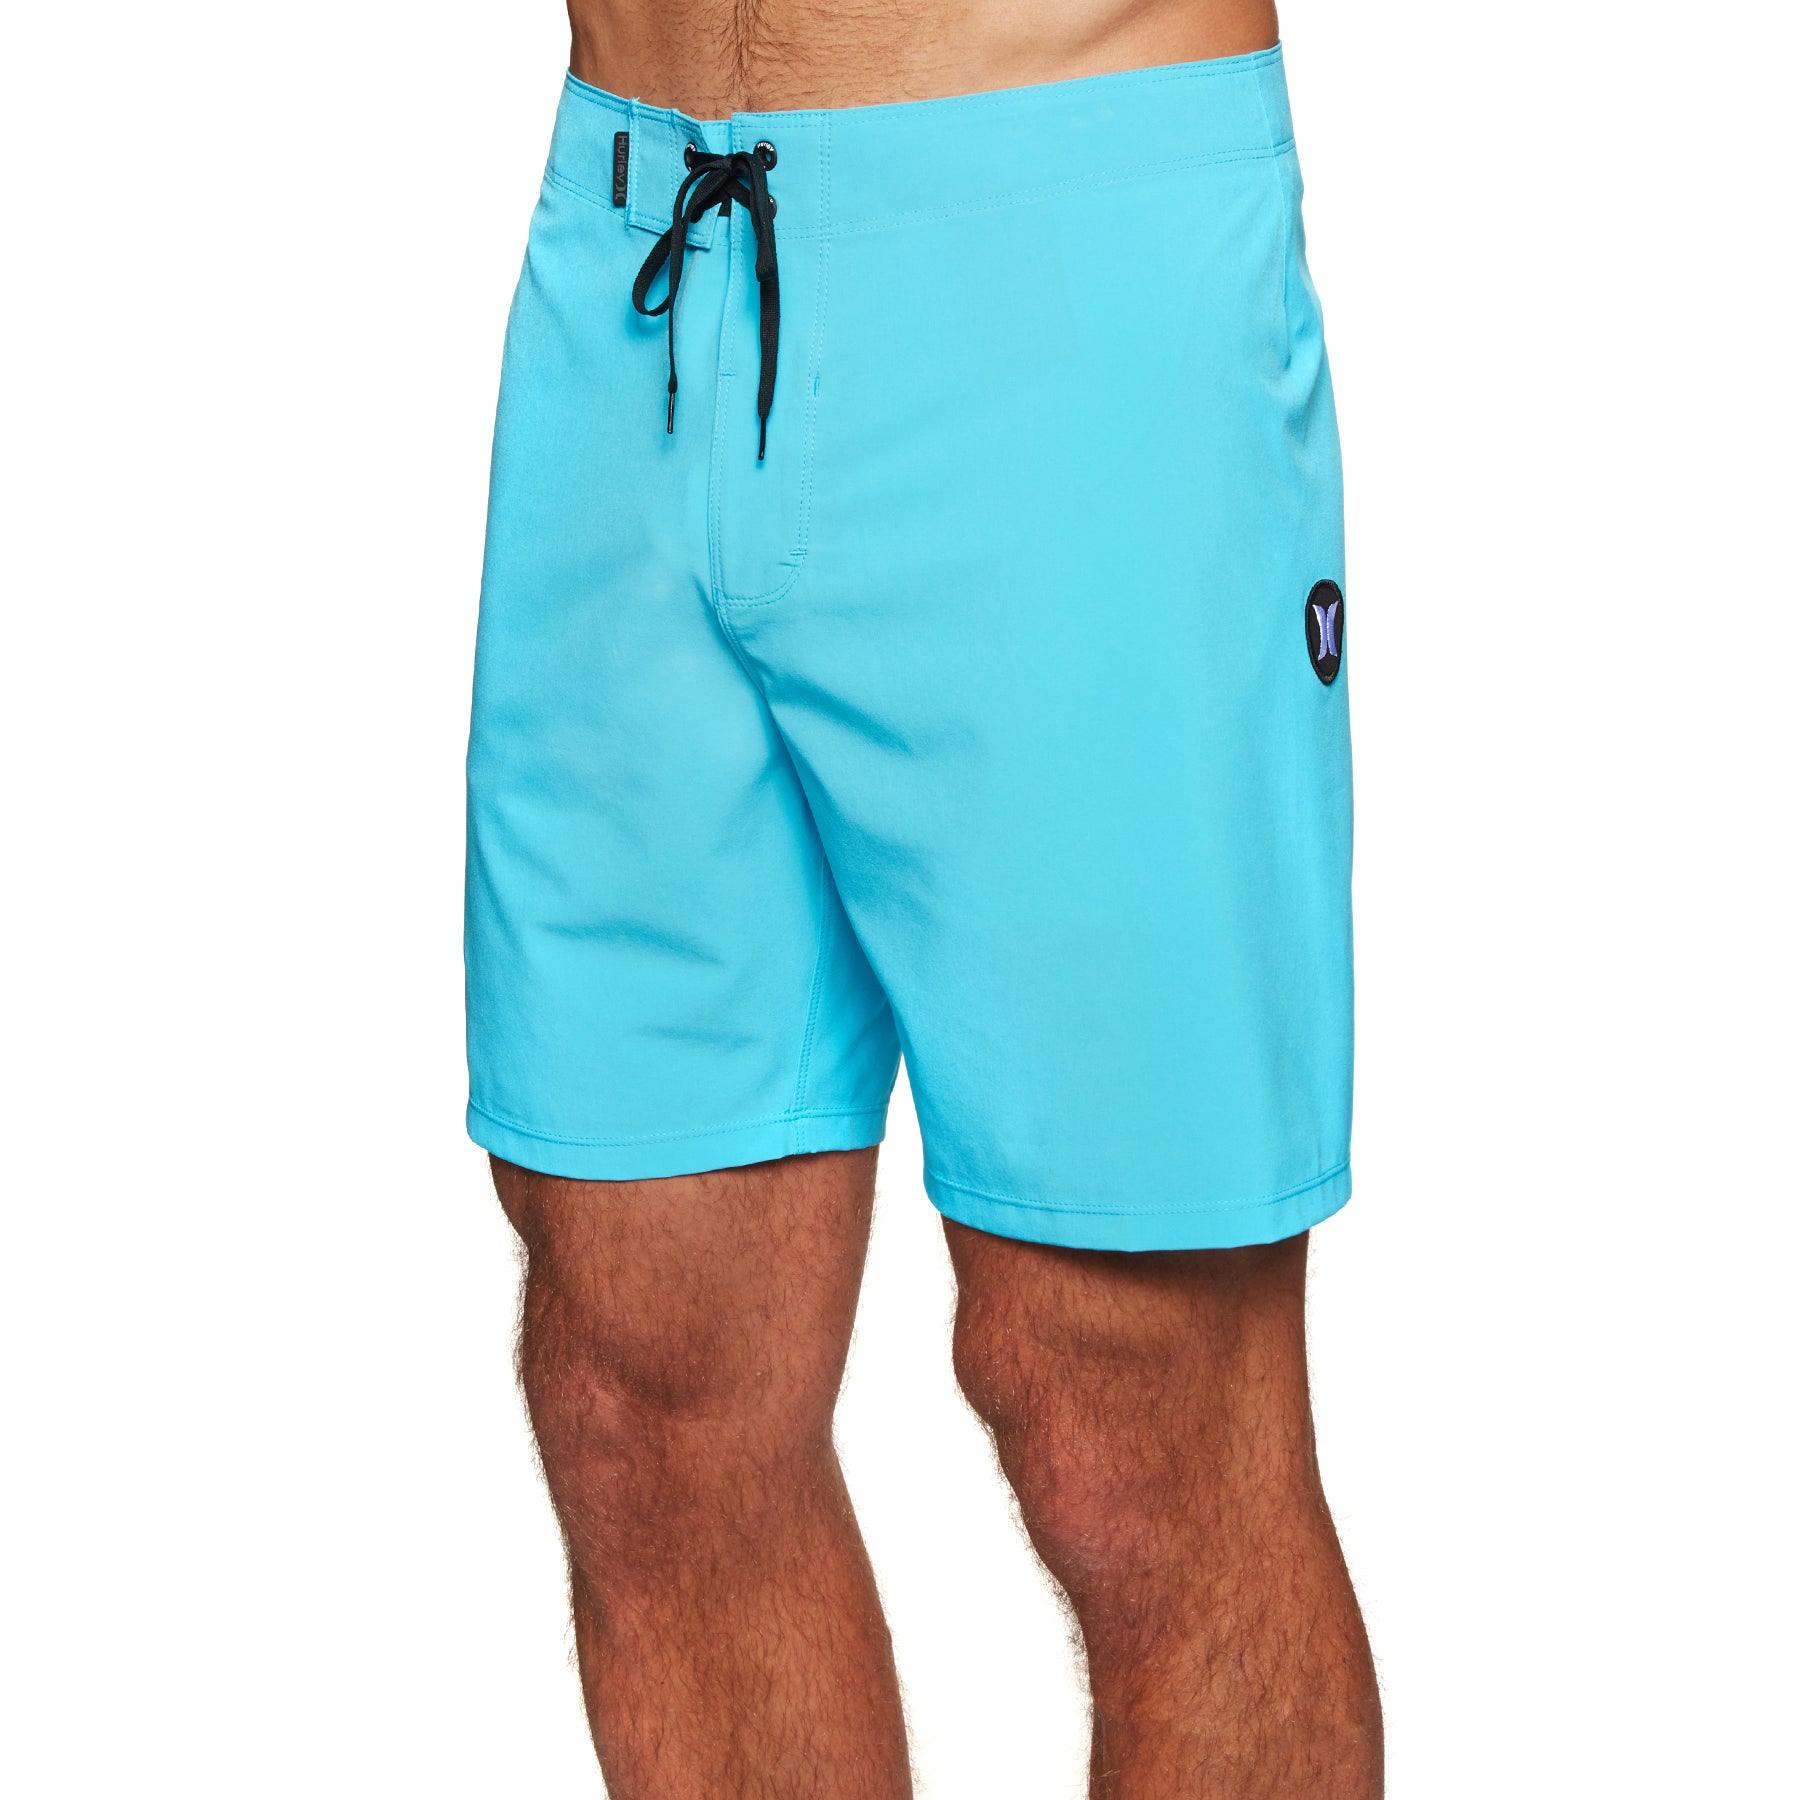 Boardshort Hurley Phantom One And Only 18in - Blue Fury